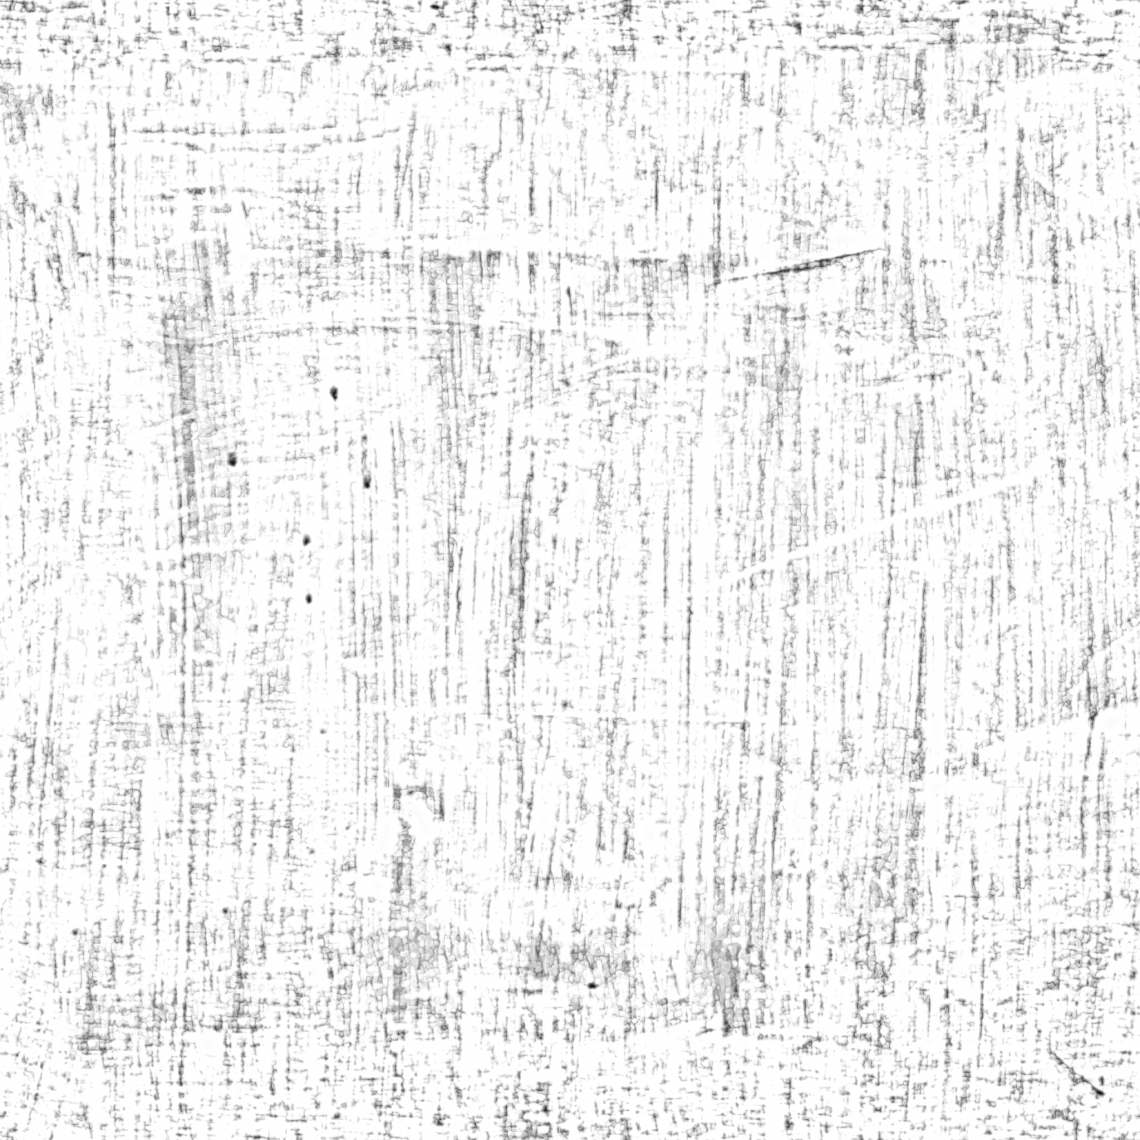 Wood-Plain-04-Ambient-Occlusion